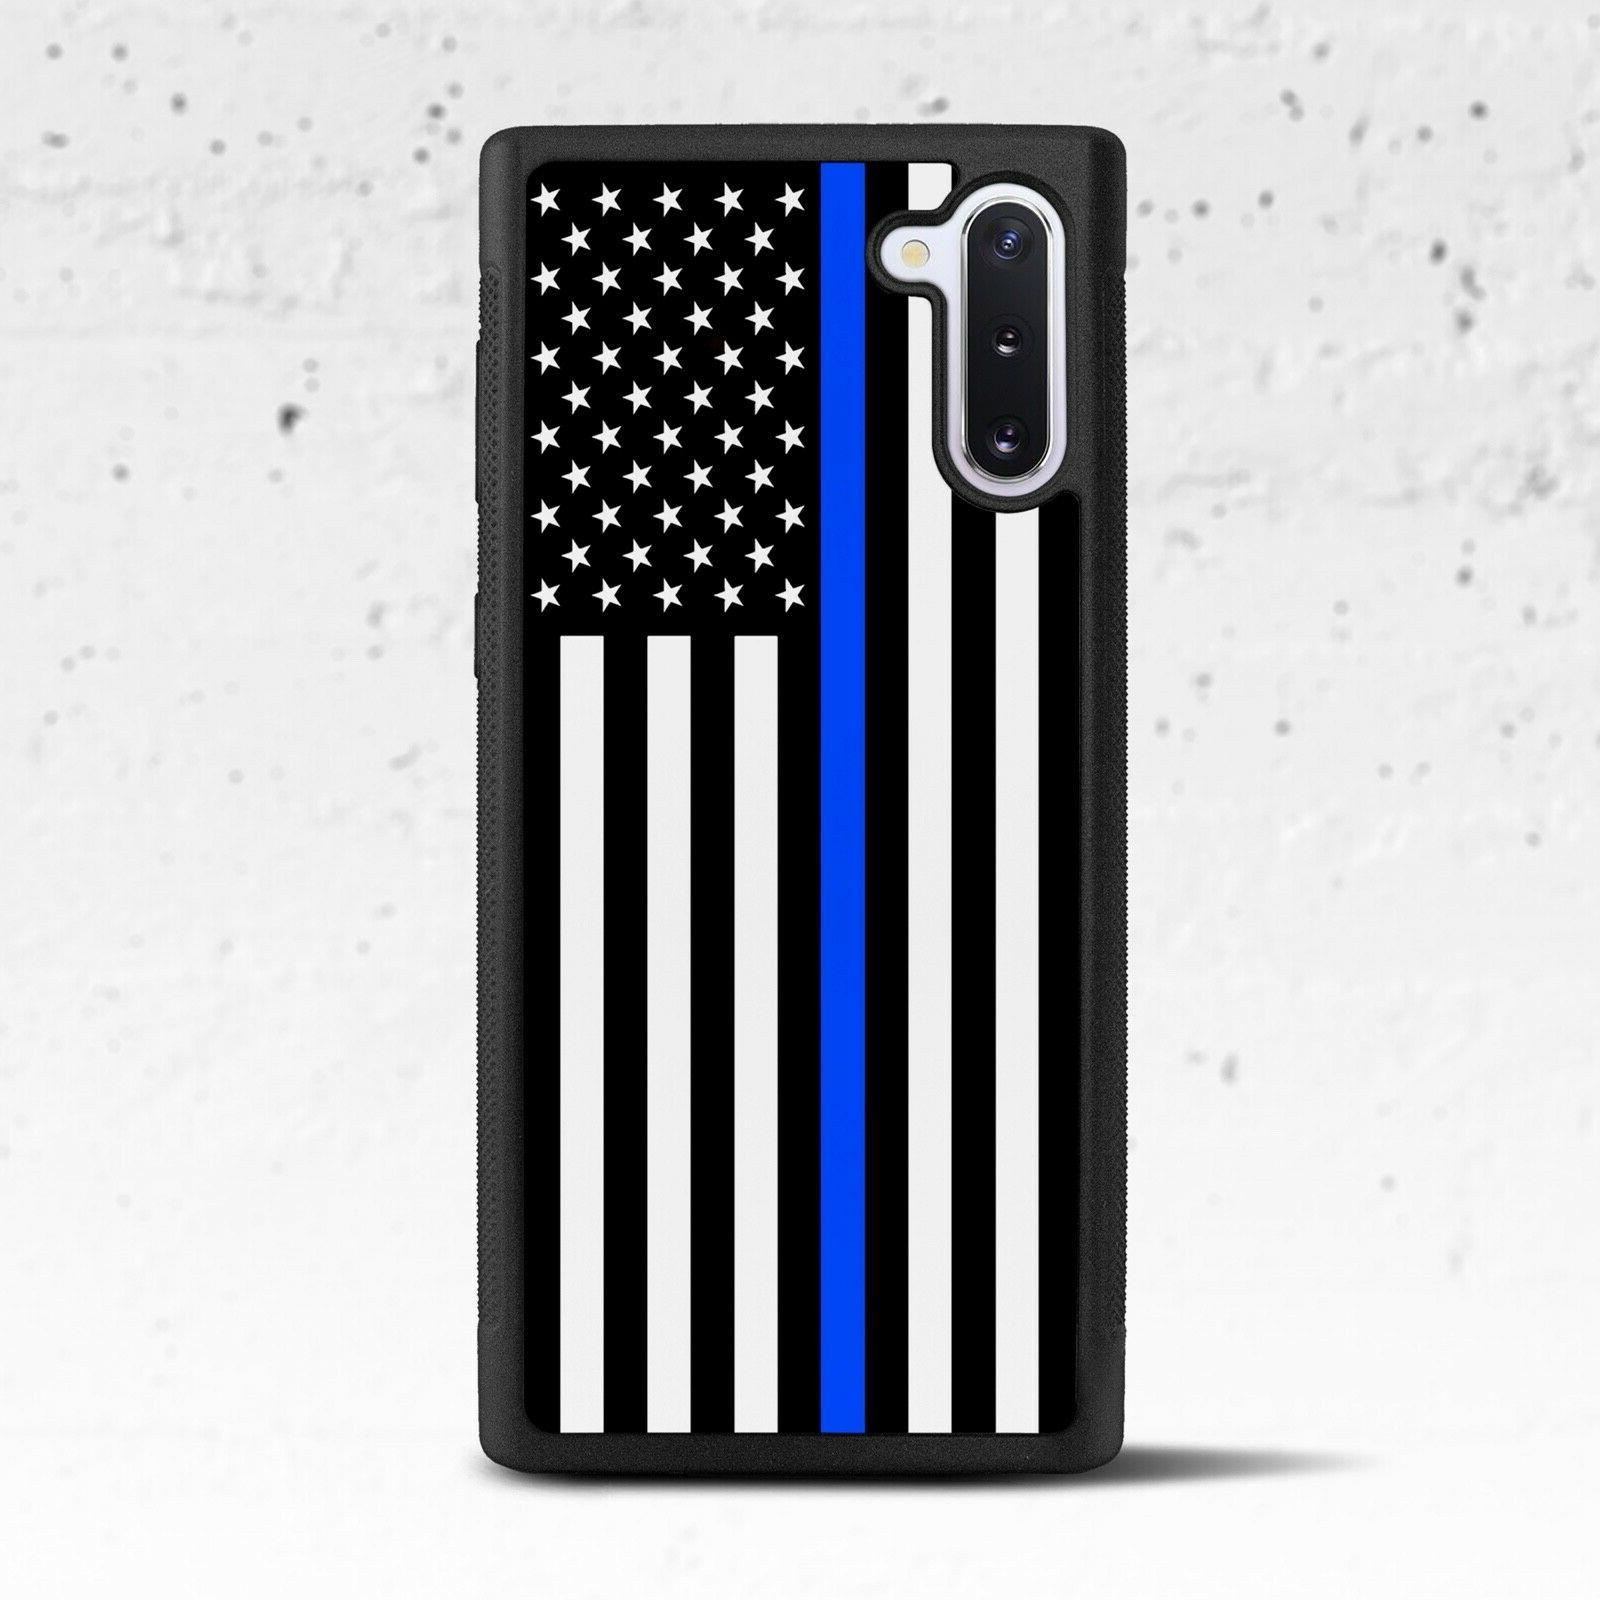 A Thin Police Phone for iPhone Samsung Galaxy S &